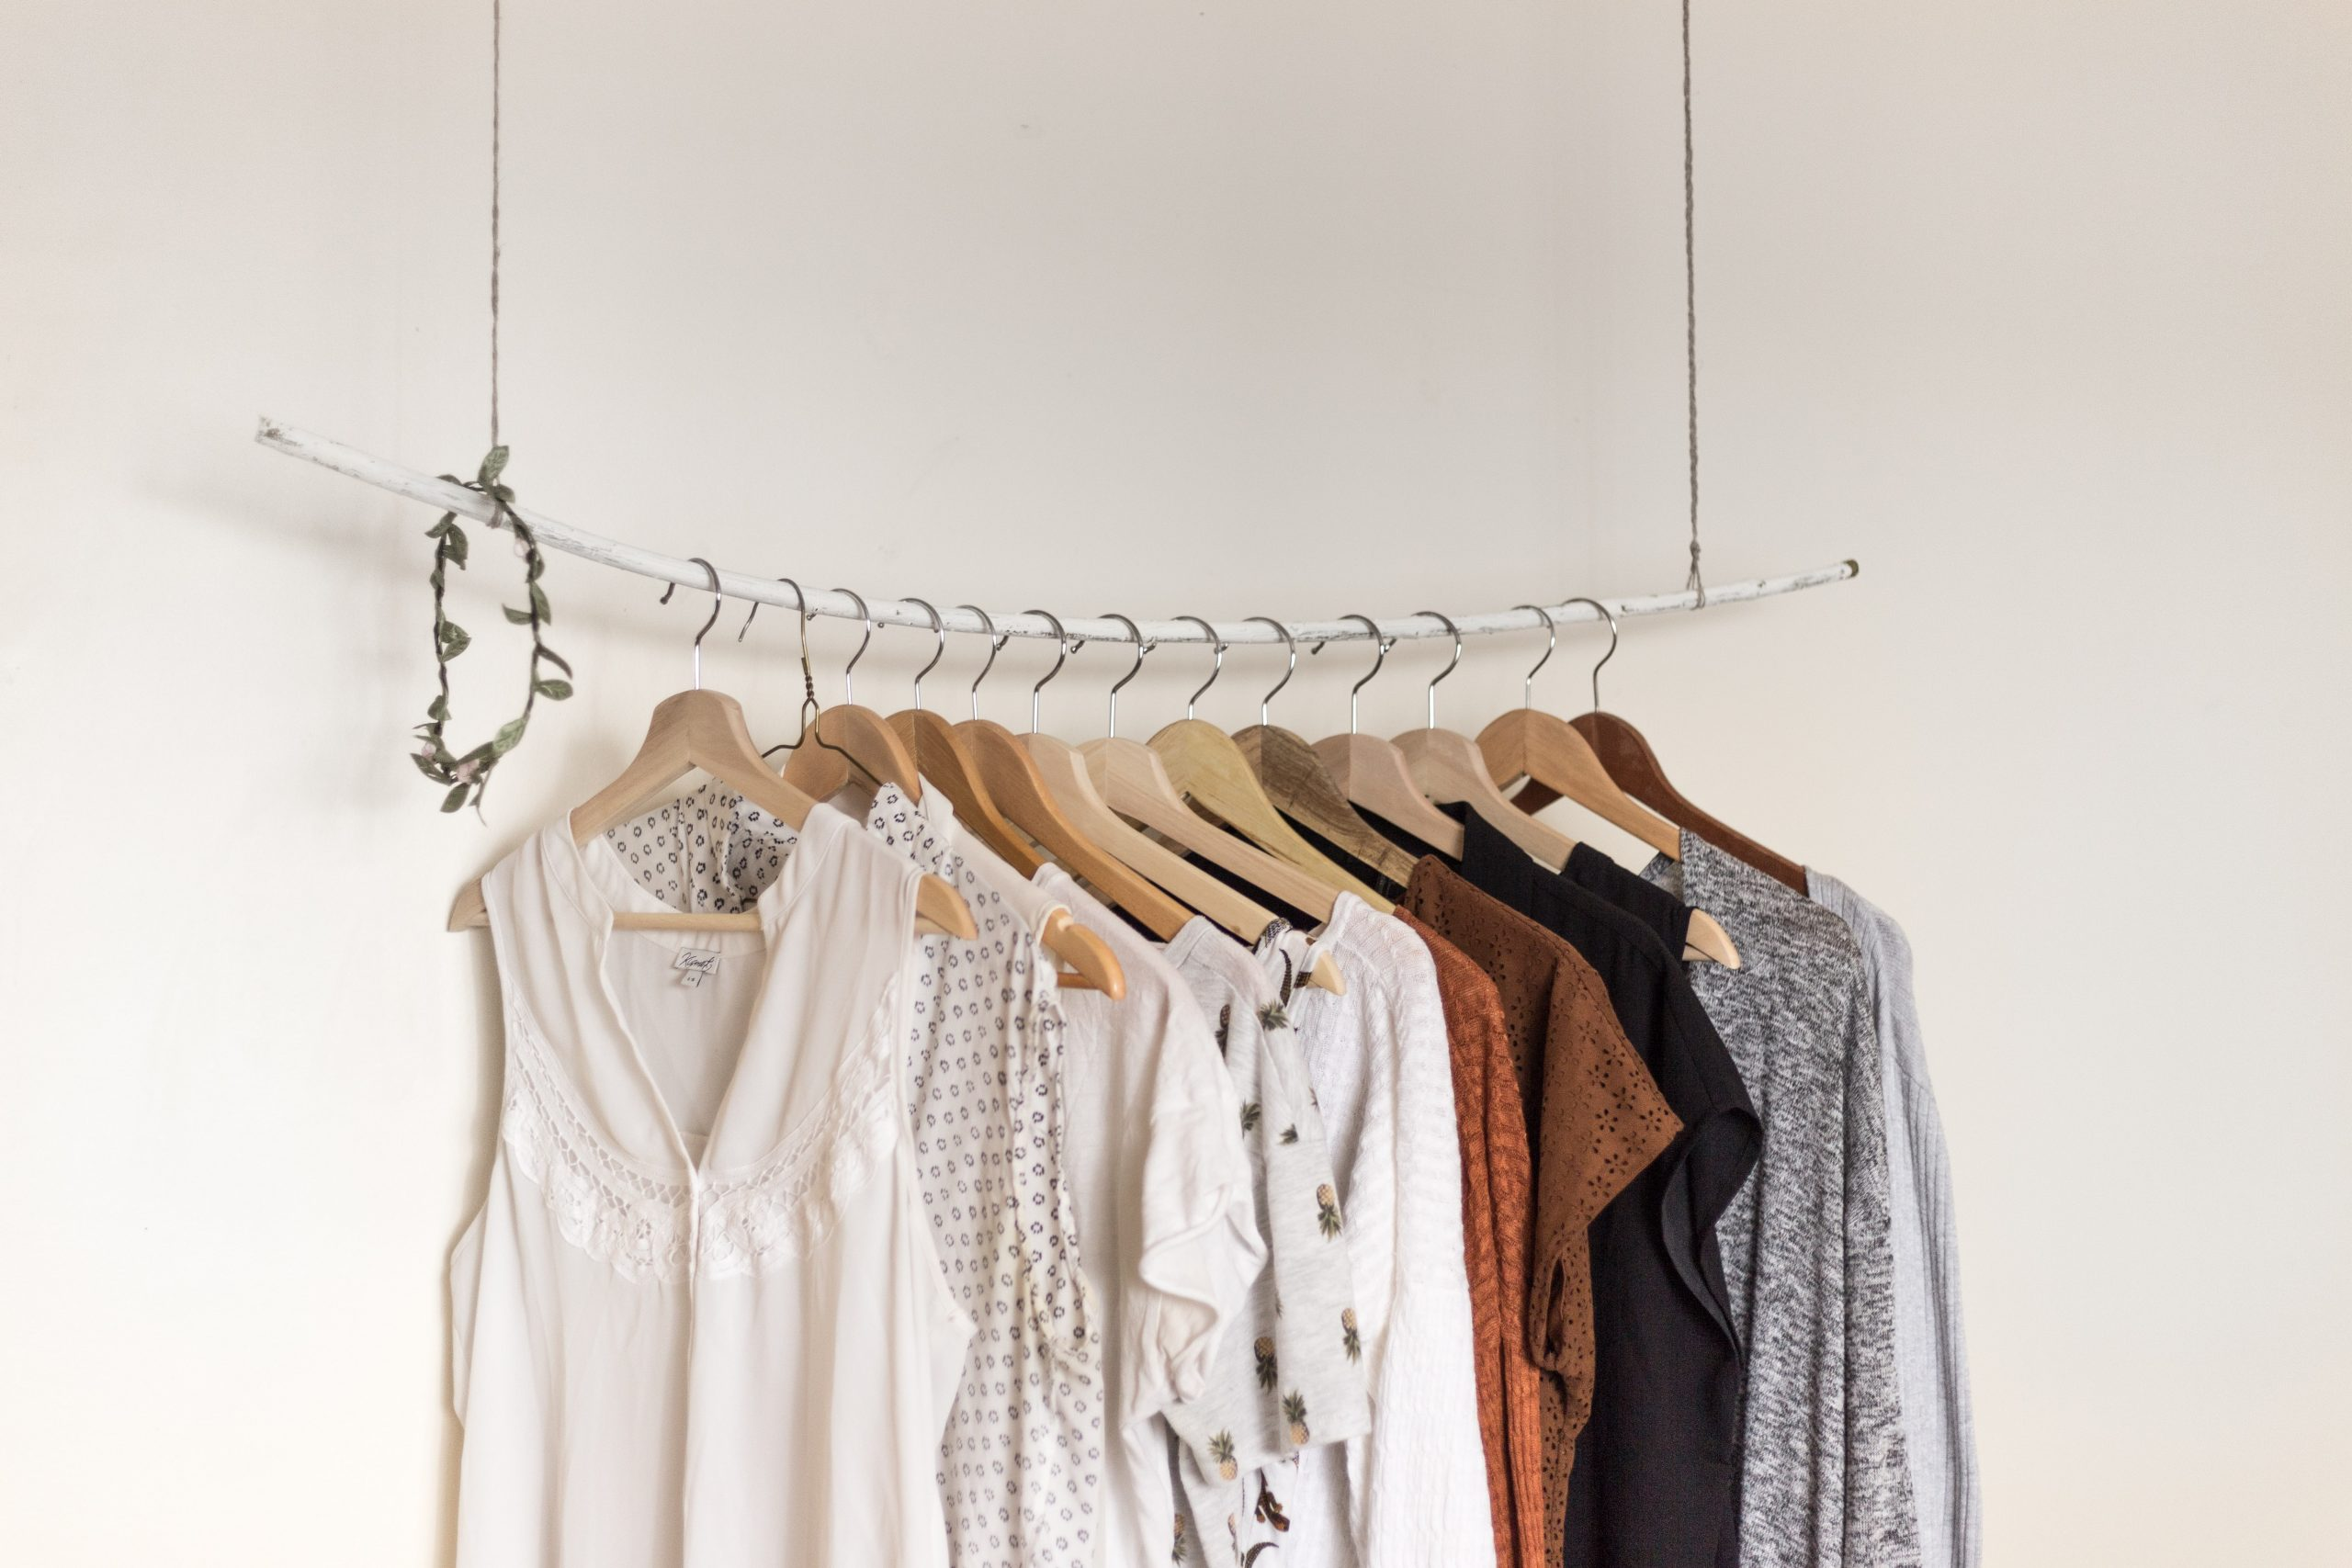 a rack of boutique clothing